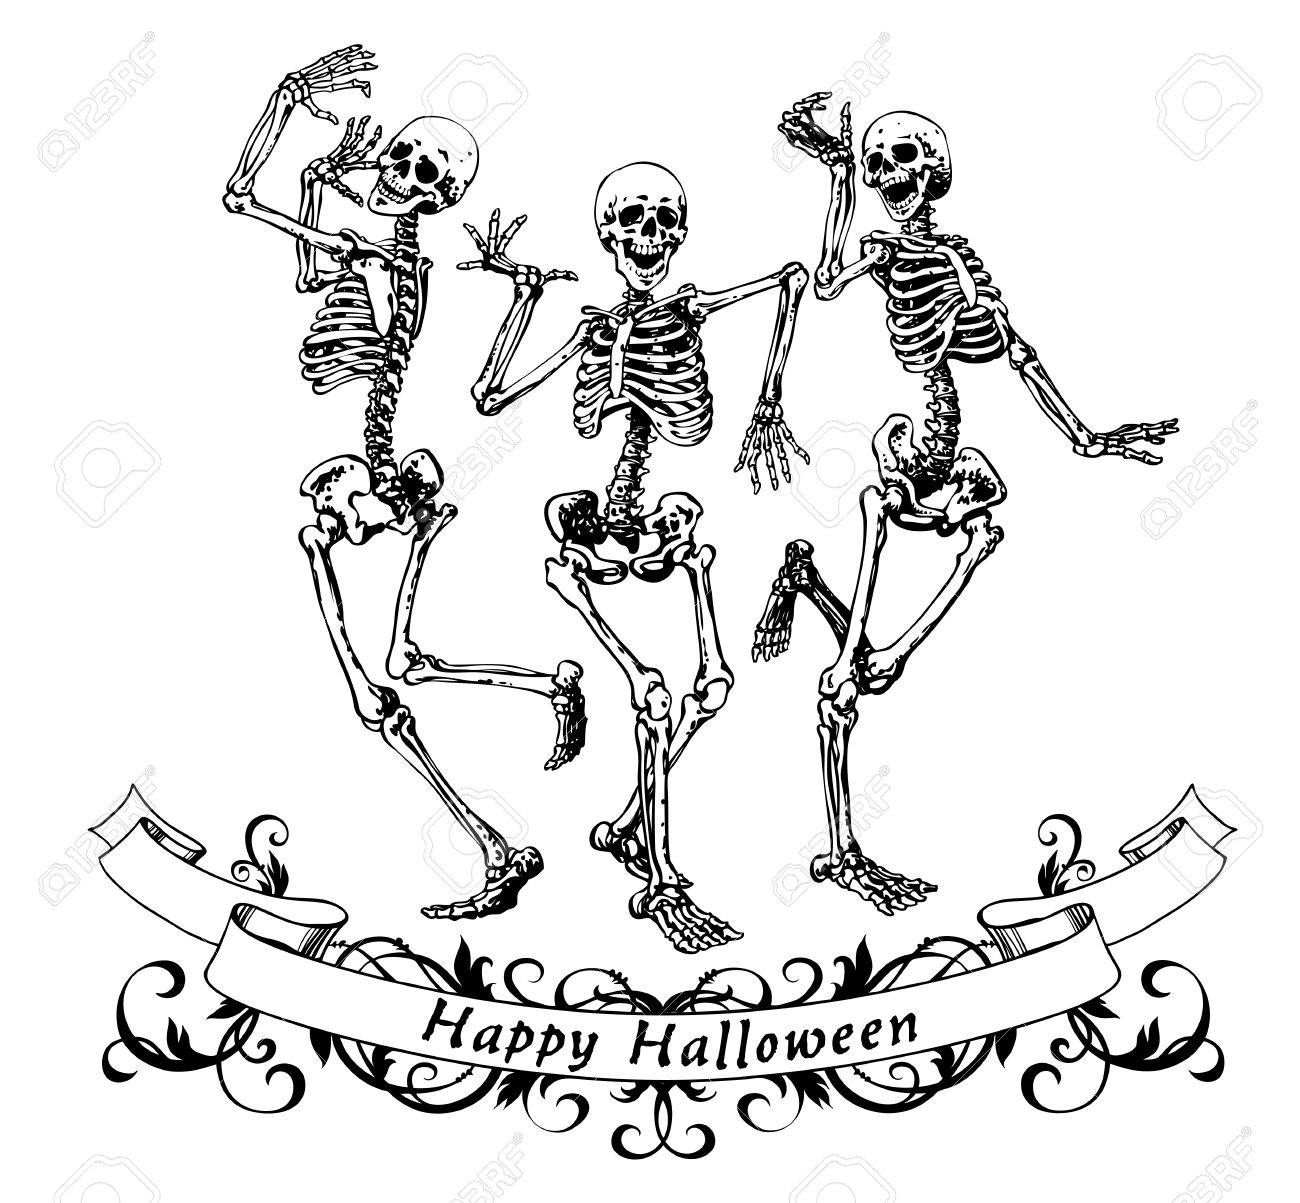 Happy halloween dancing skeletons isolated vector illustration, contour graphics for posters and banners - 63750482